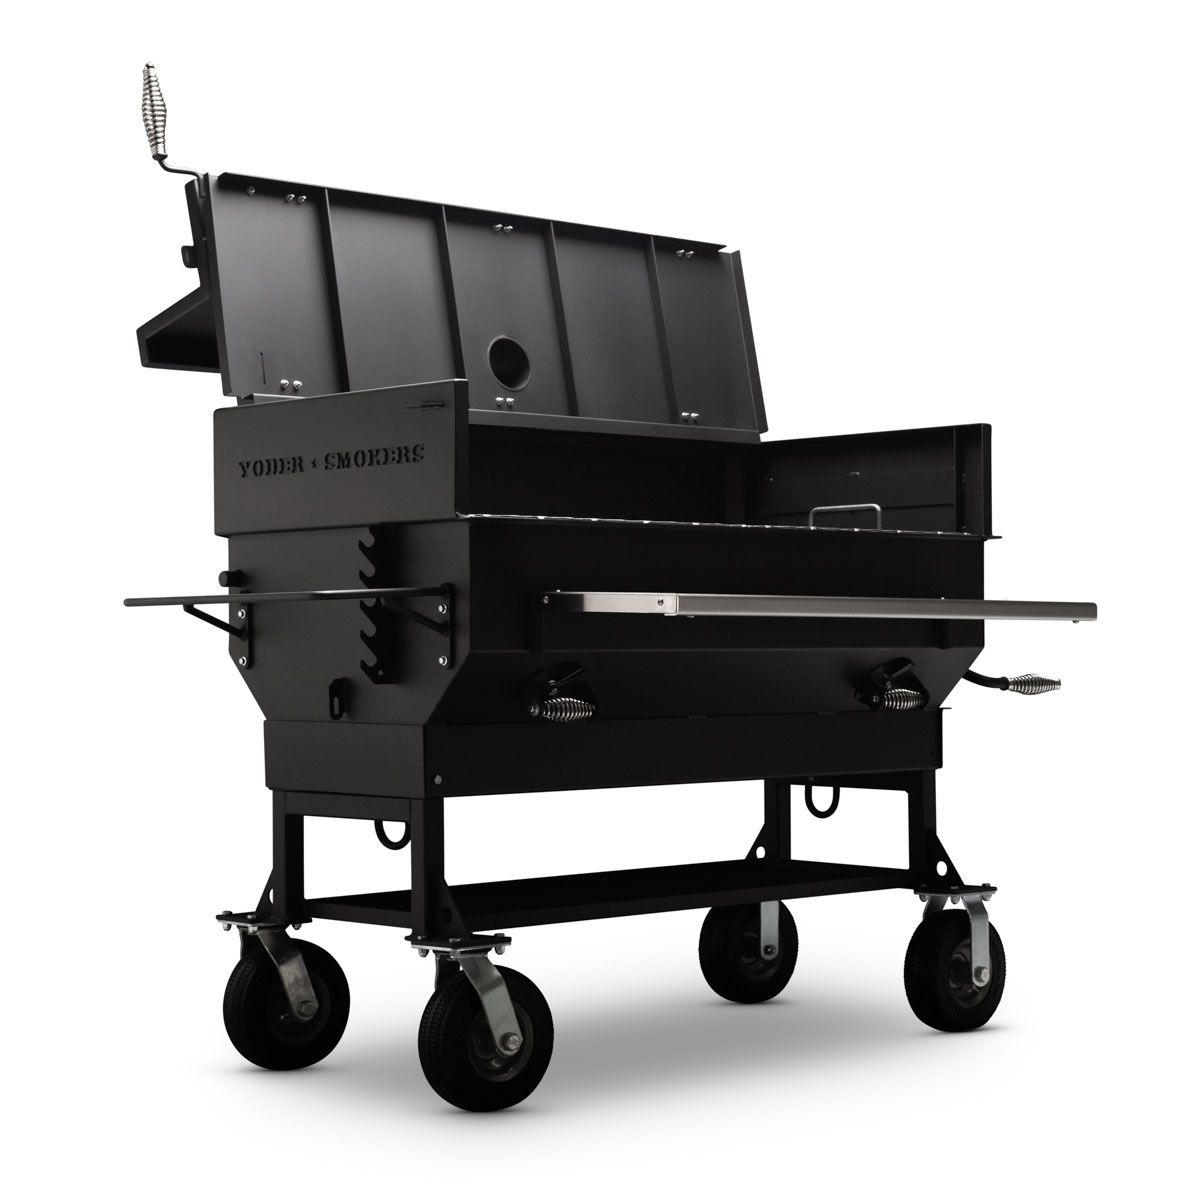 Grill 24 24